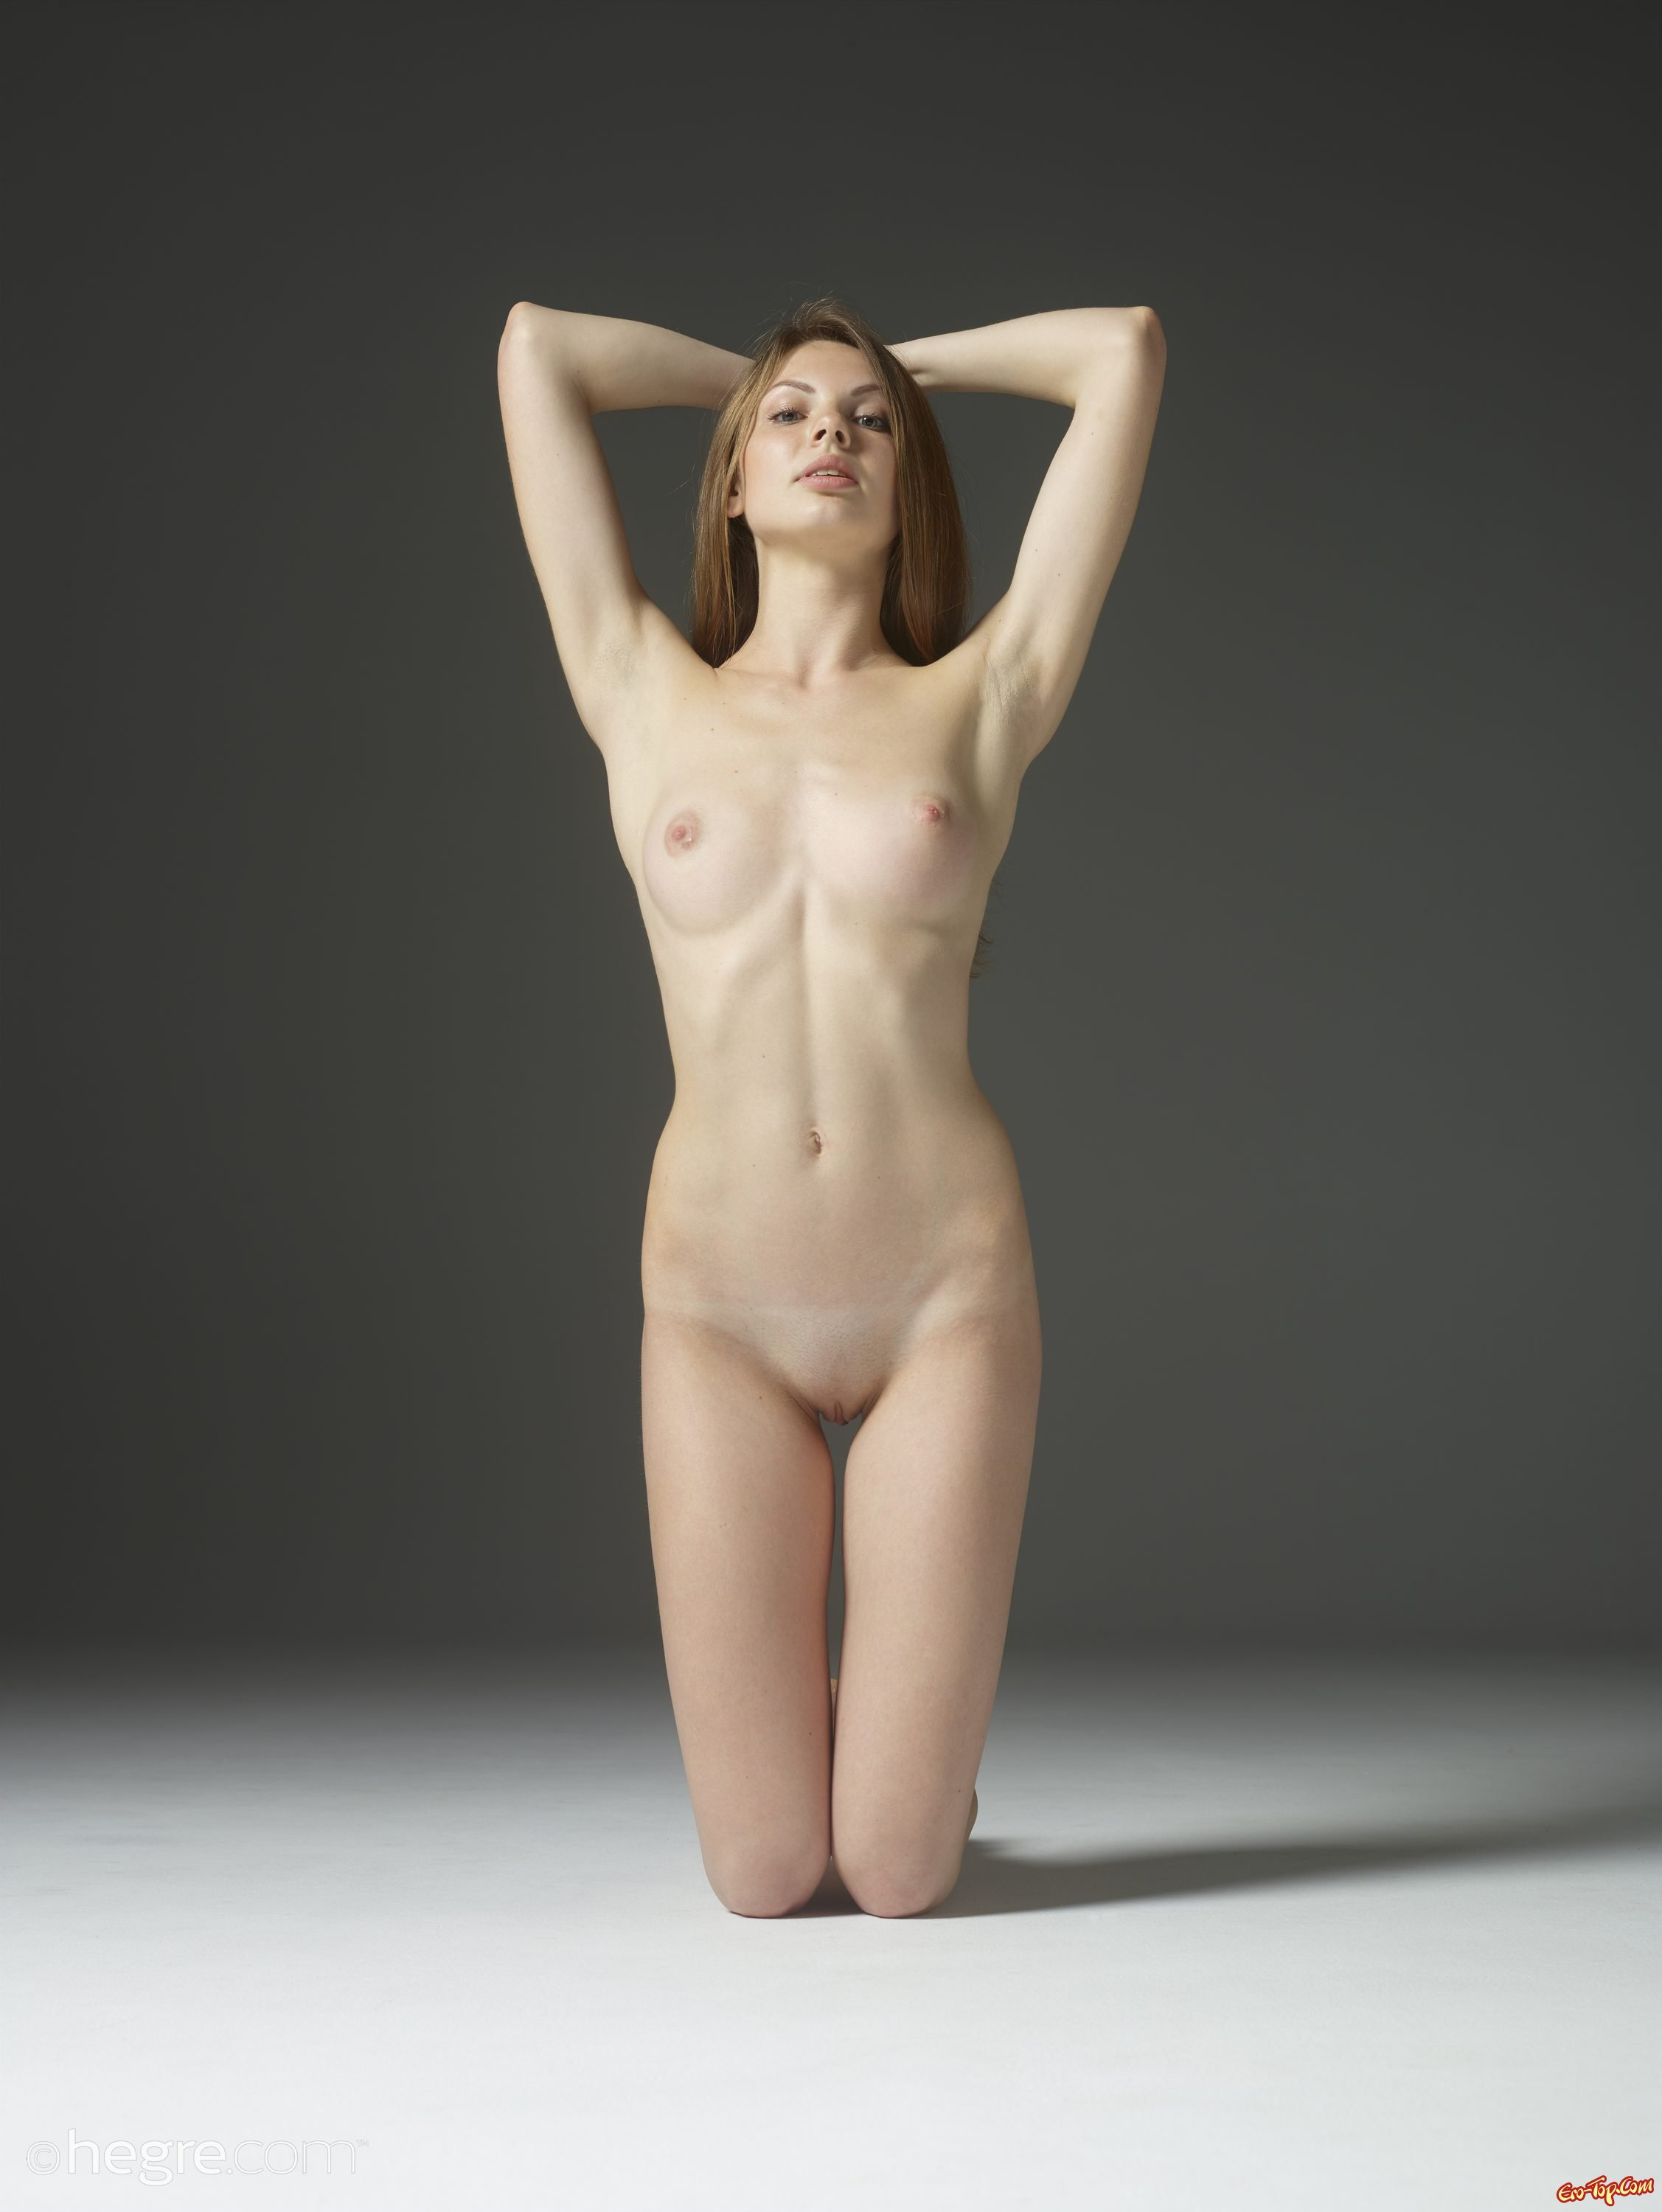 hot-fully-naked-girl-bodies-sex-gfs-sexting